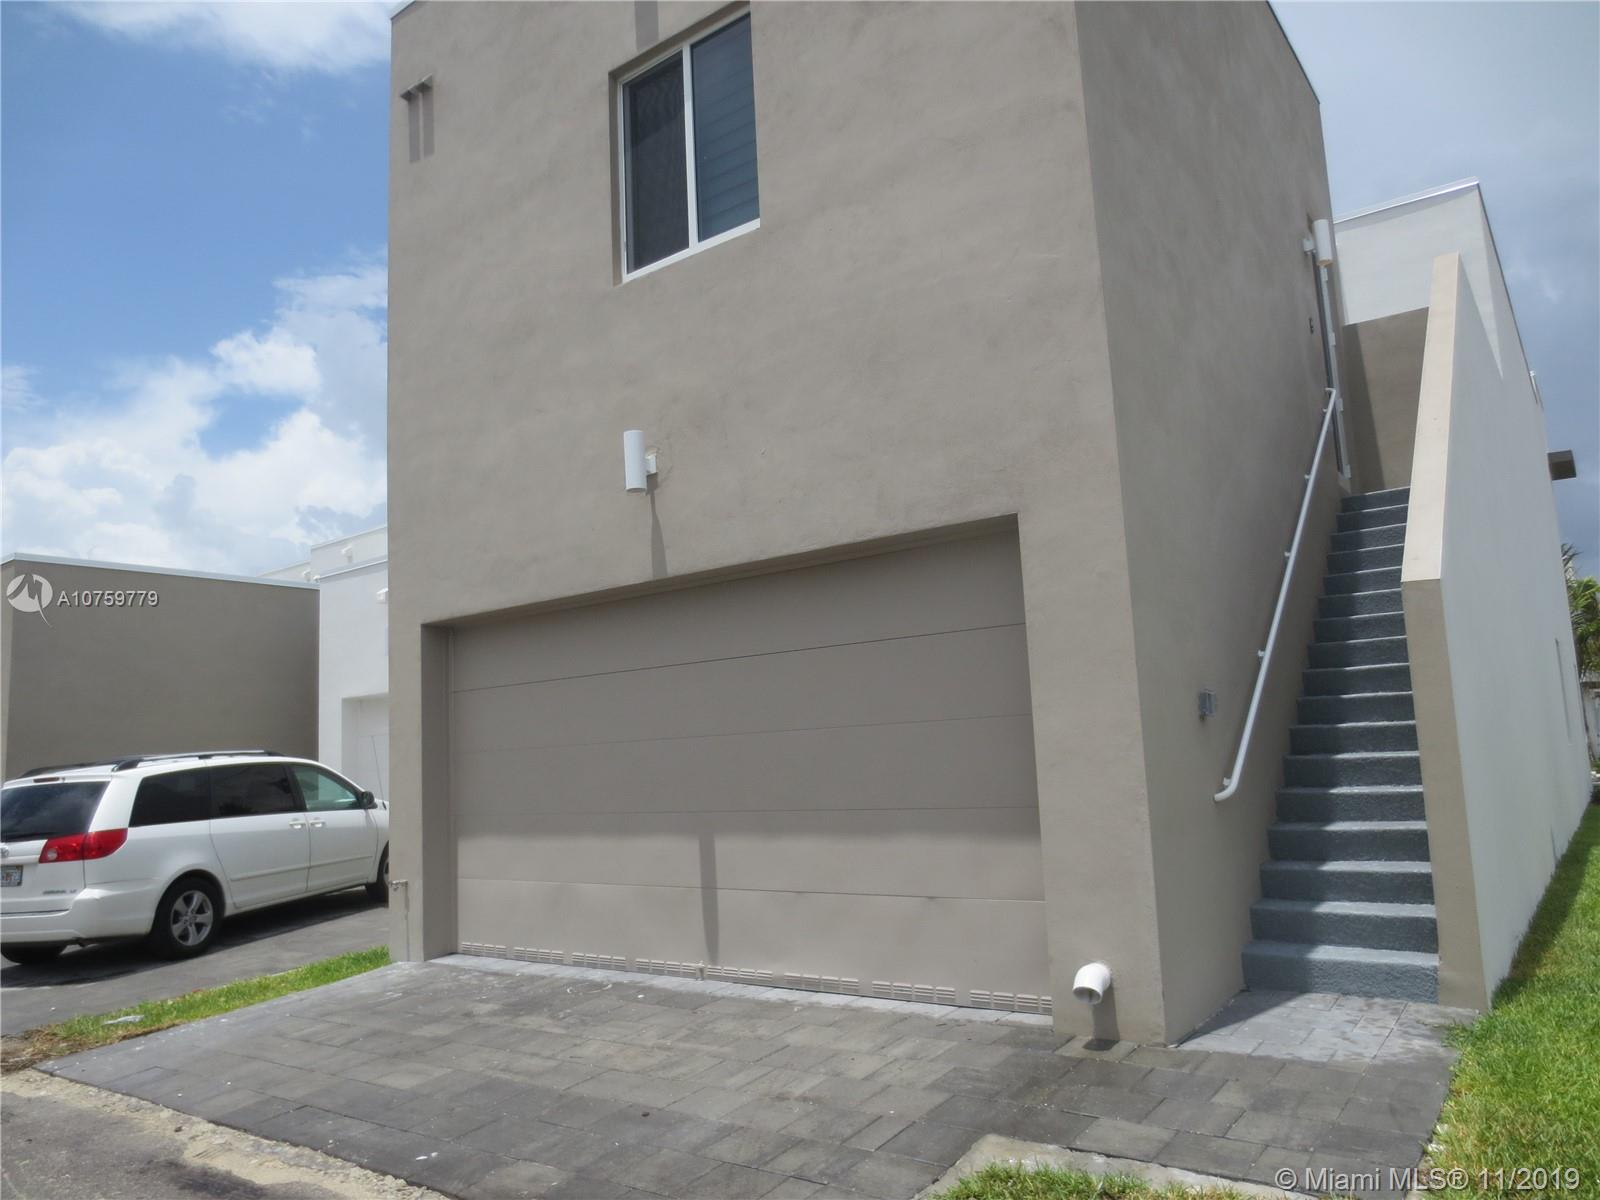 6681 NW 104th Ave #1 For Sale A10759779, FL